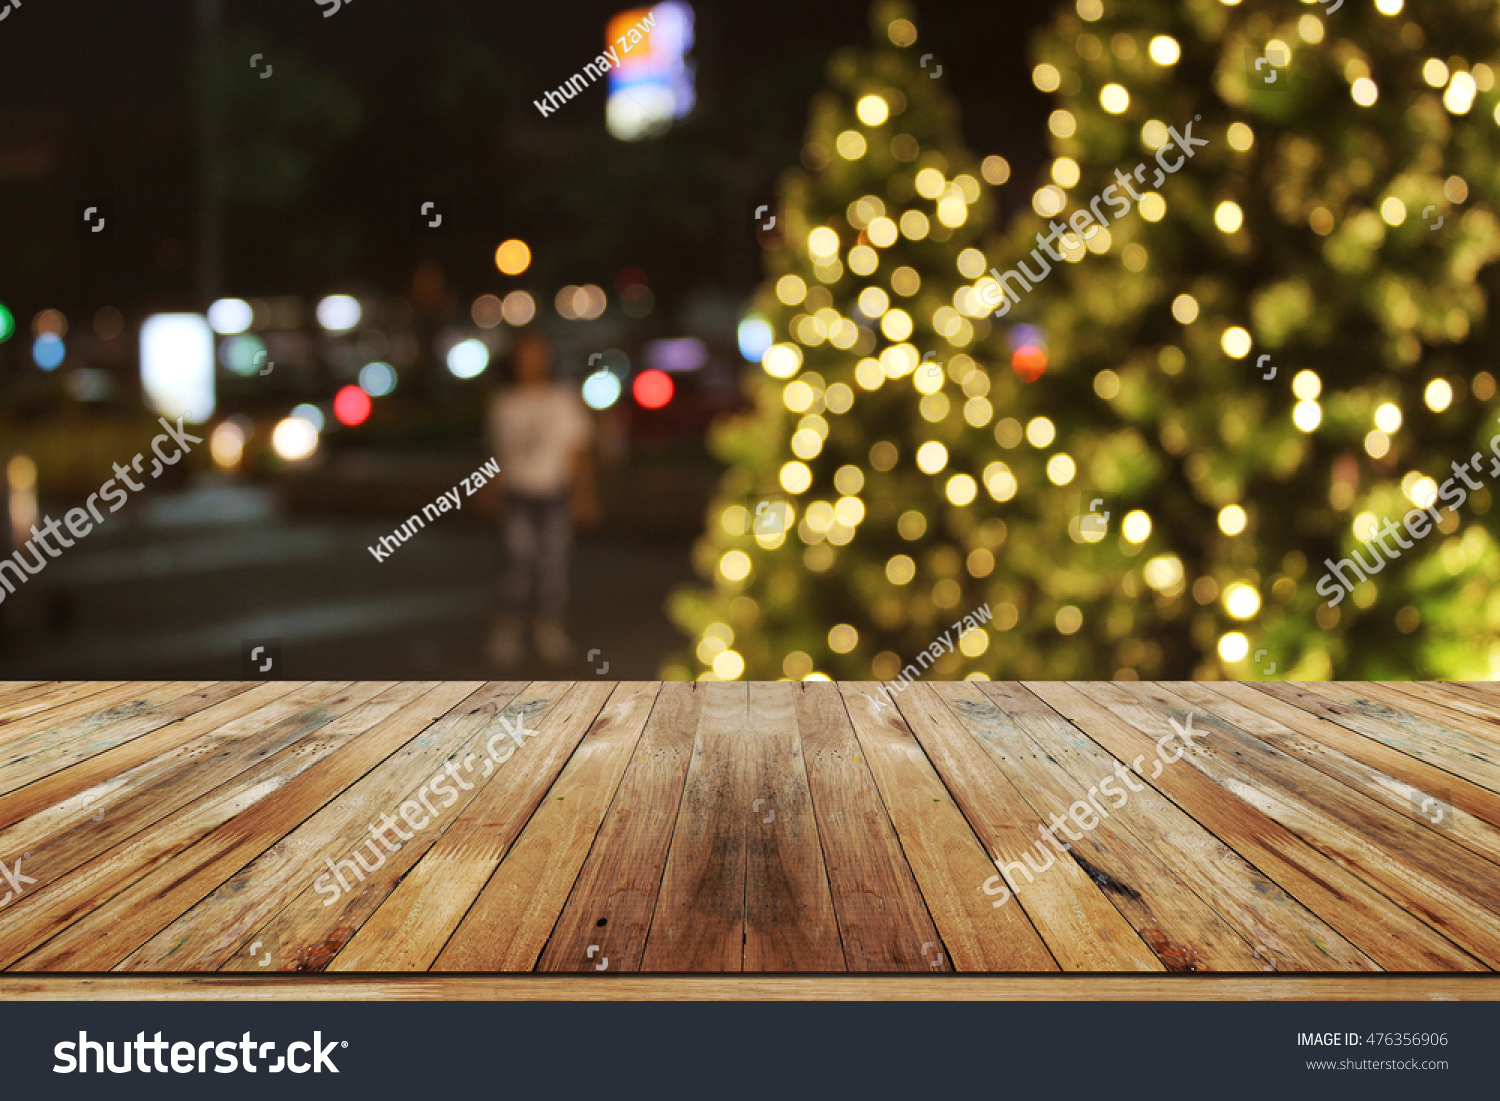 Rustic Wood Table In Front Of Christmas Light Nightabstract Circular Bokeh Background 476356906